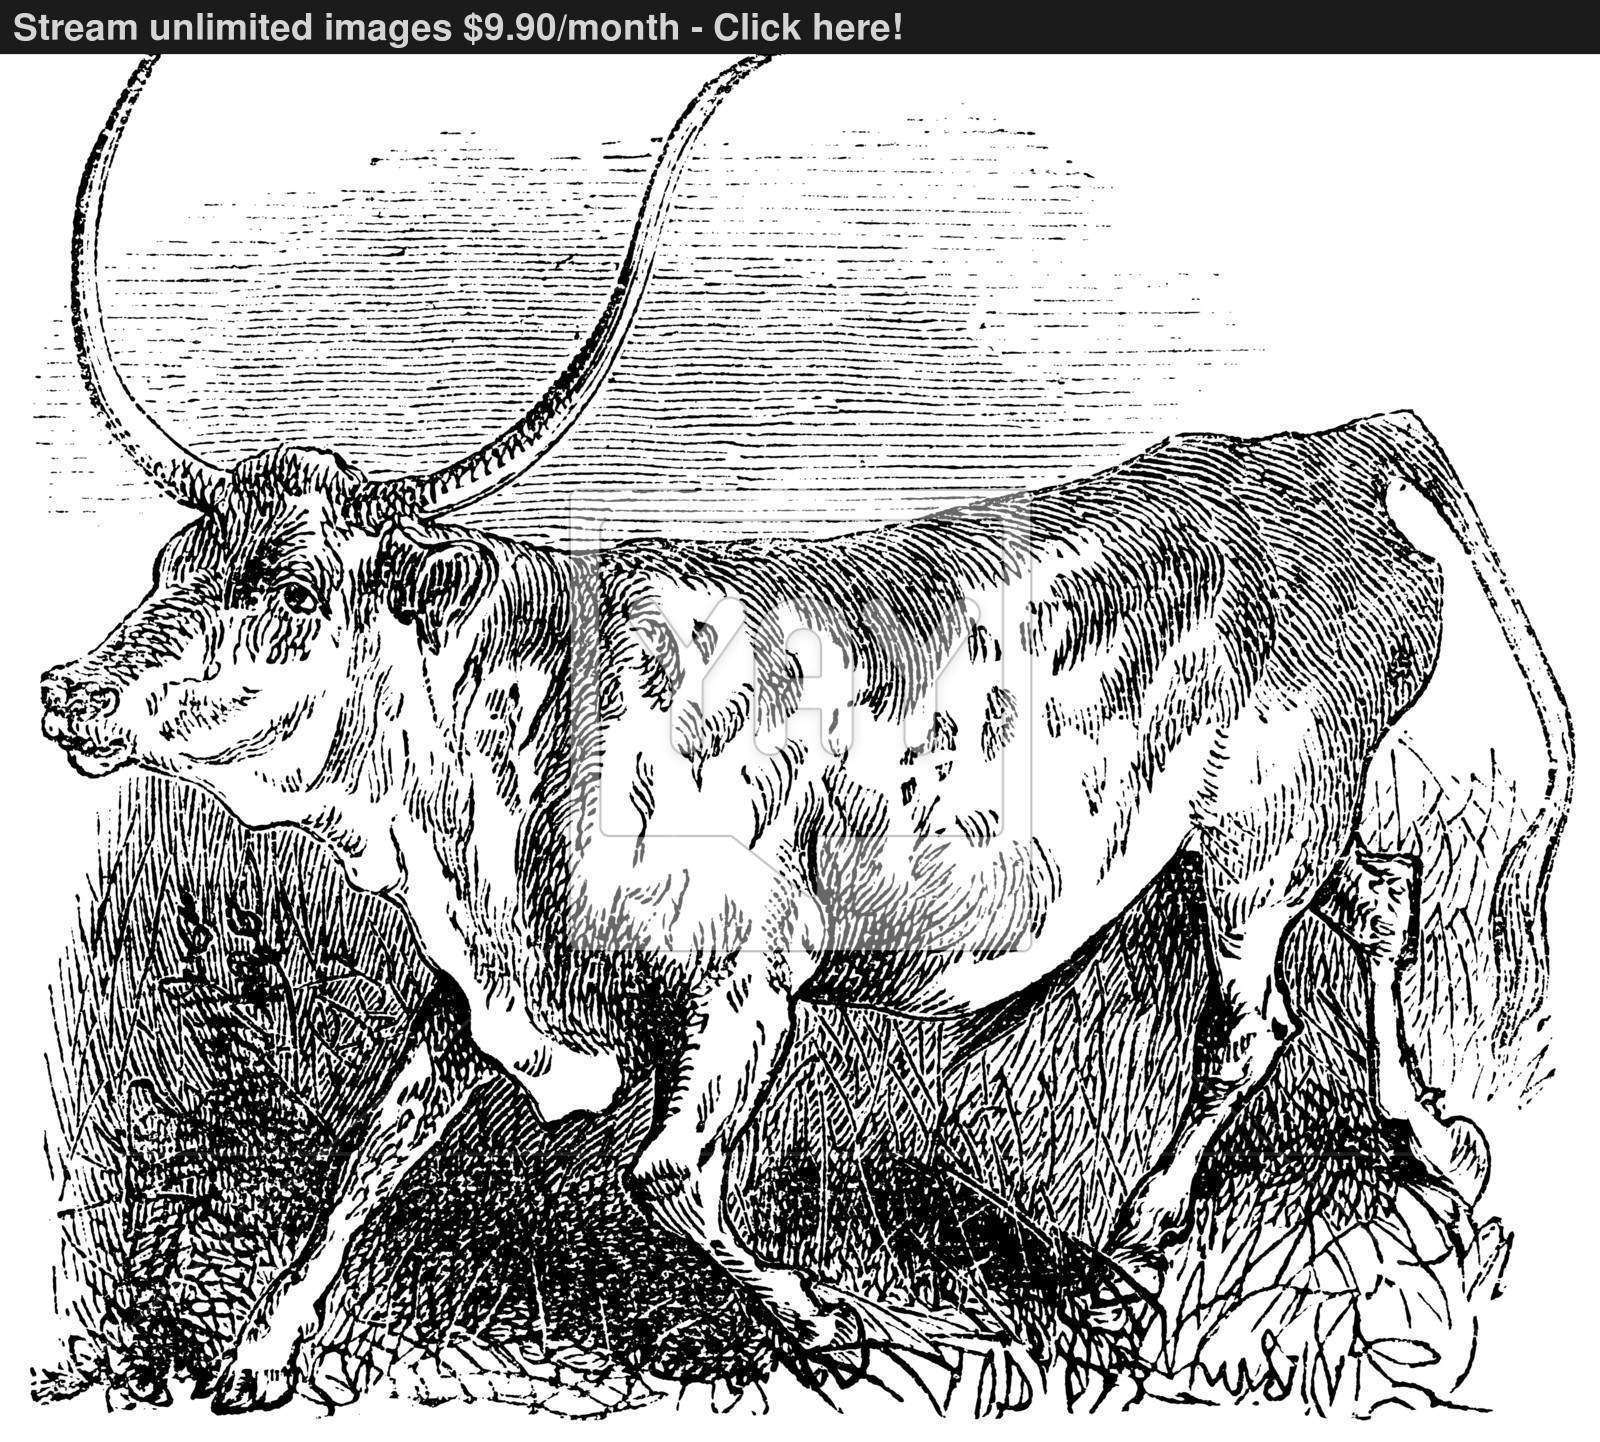 1600x1442 Brazilian, Cow, Vintage Engraving. Vector